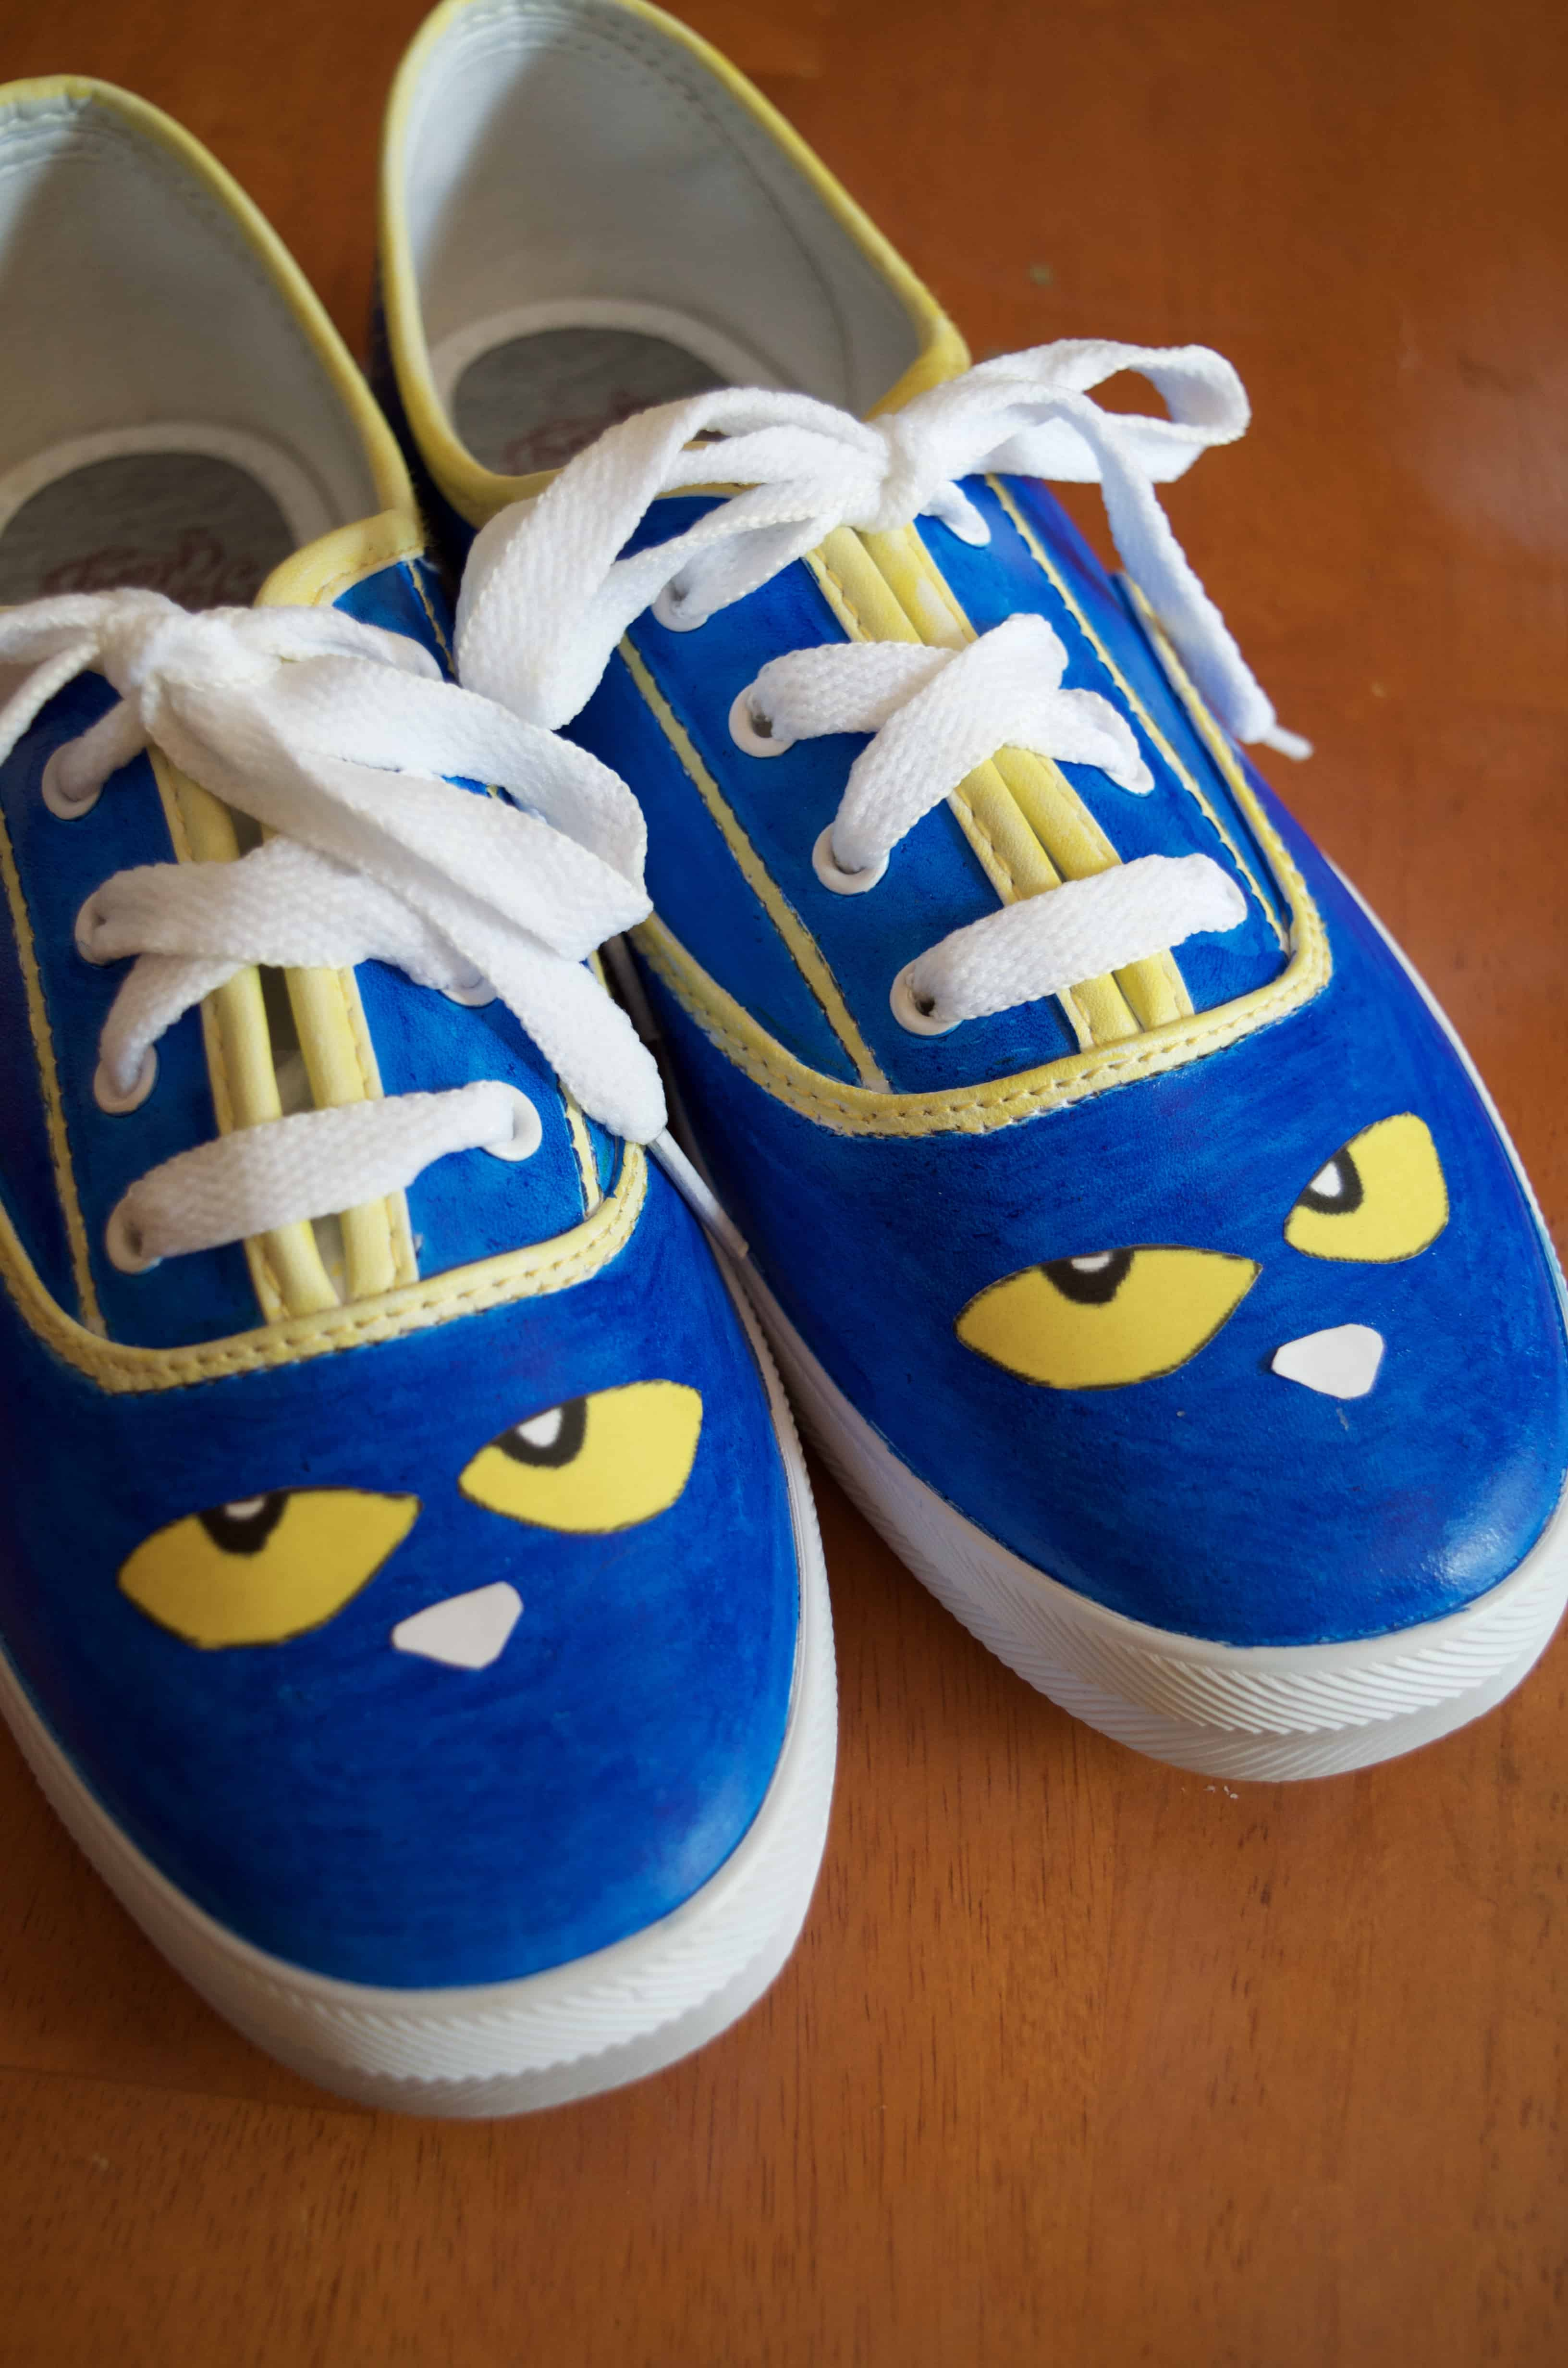 What Are Preschool Sizes In Shoes